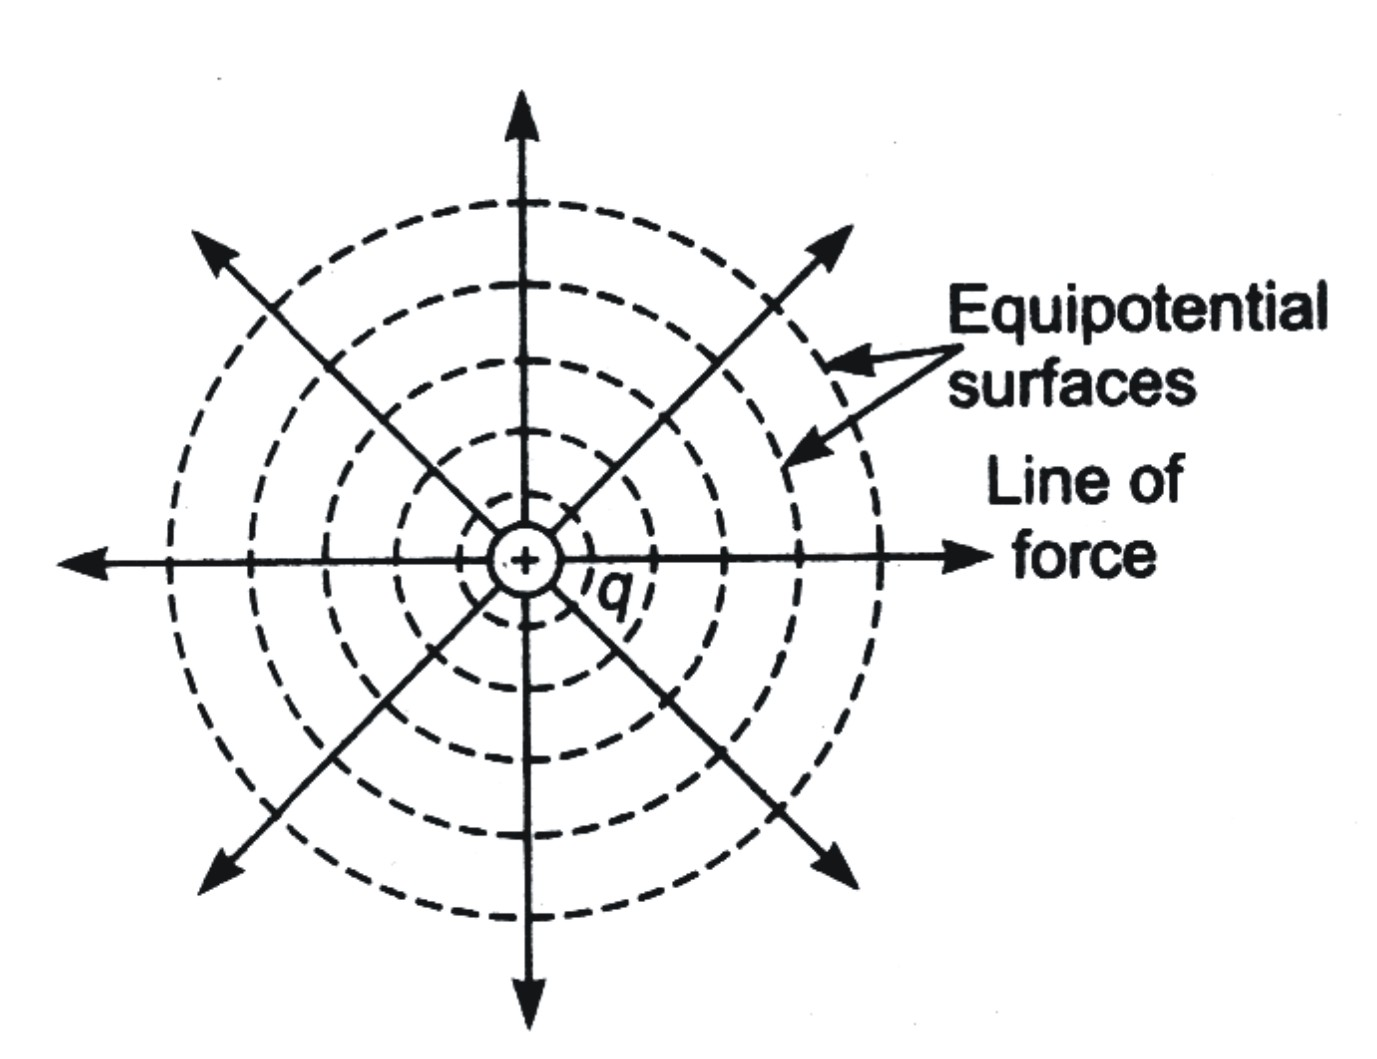 electrostatic potential and capacitance   previous year u0026 39 s questions